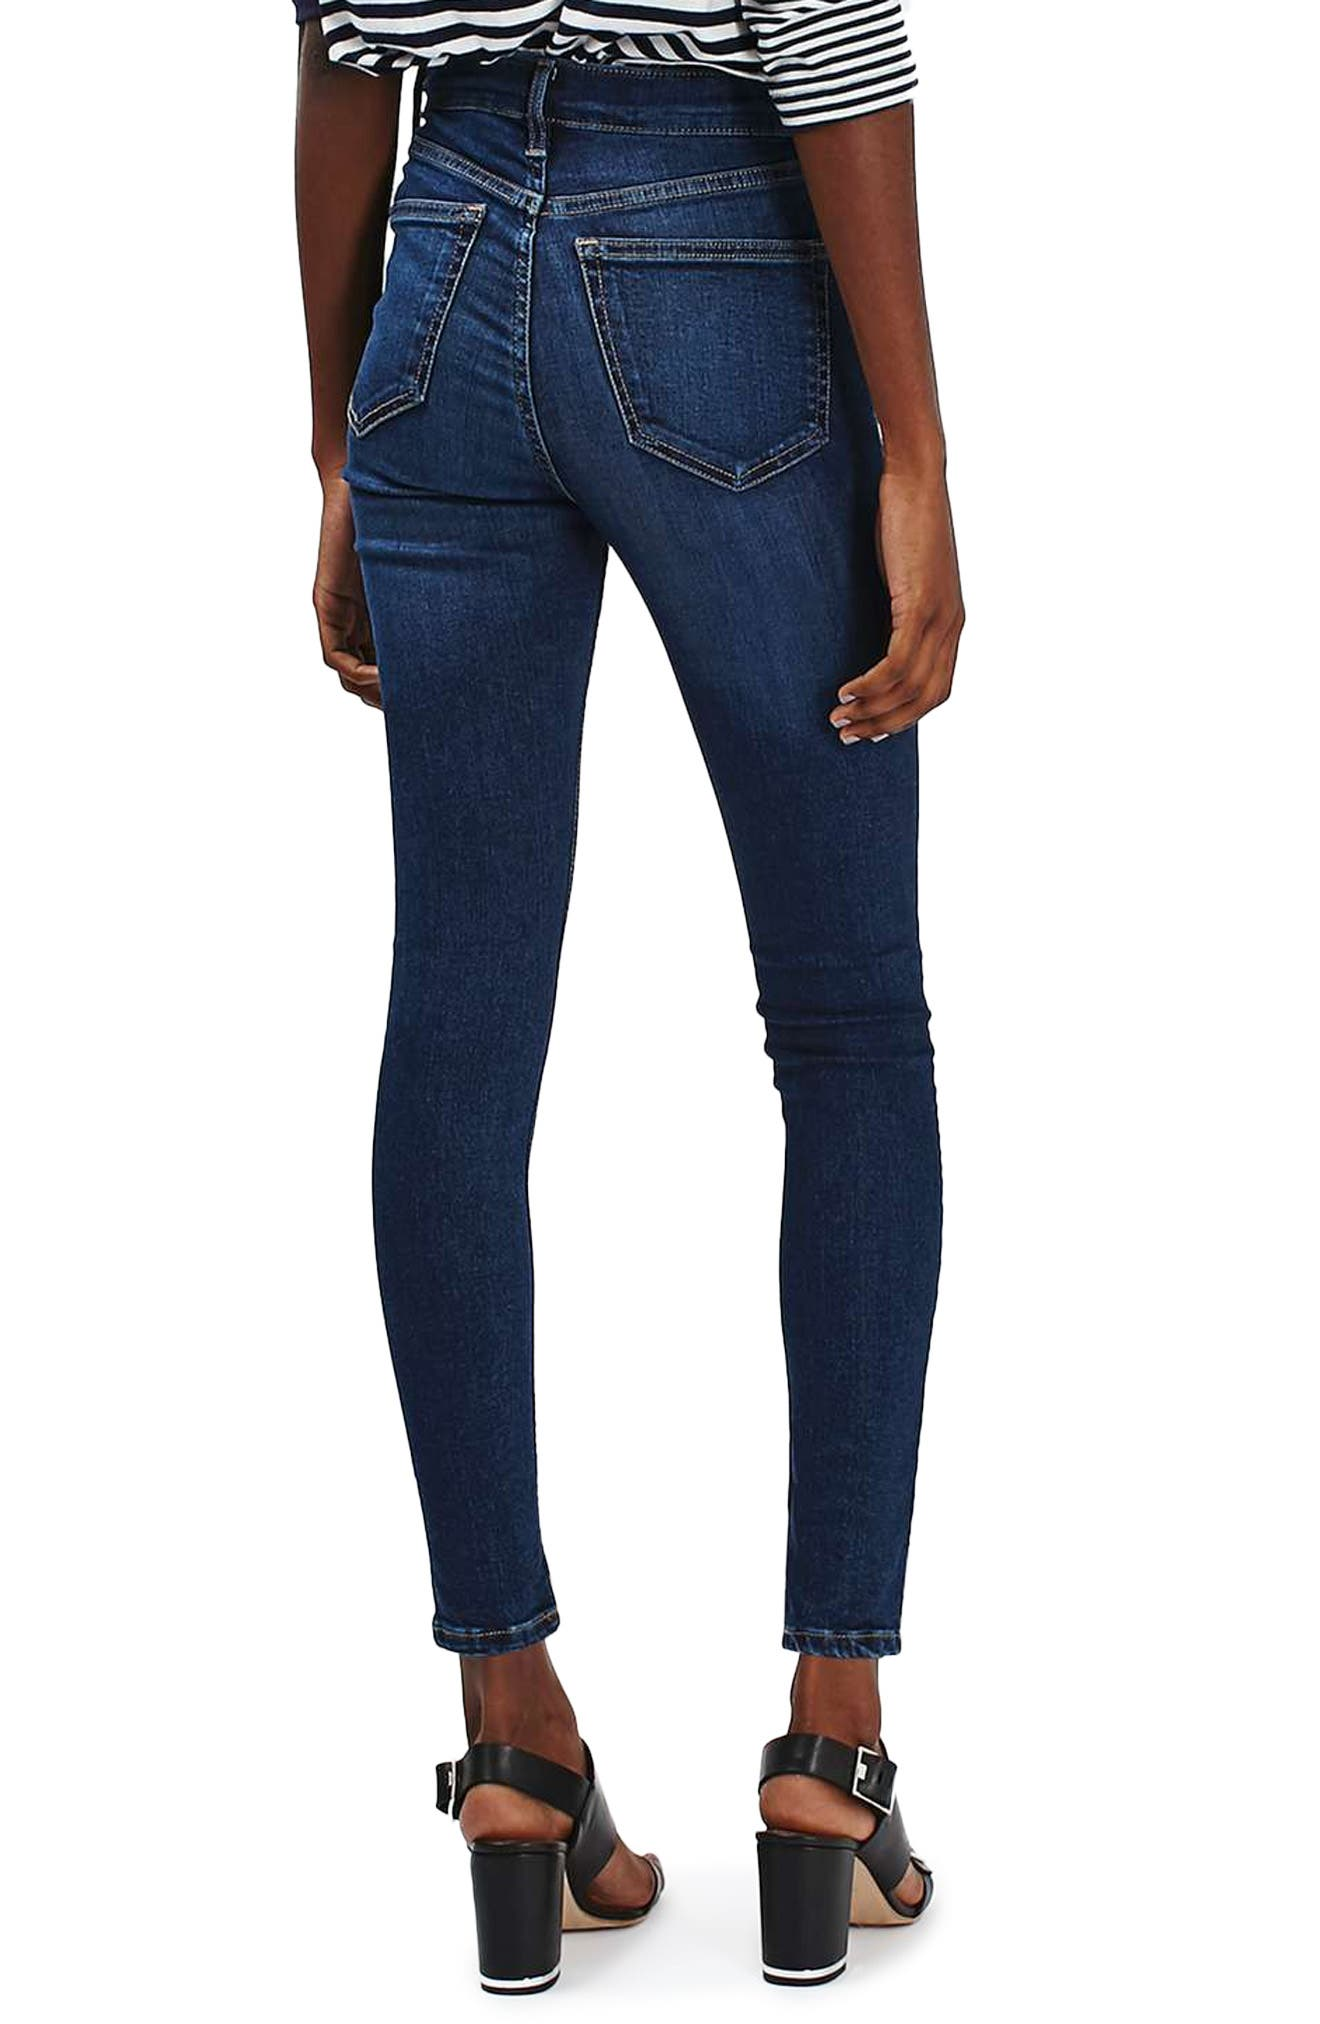 TOPSHOP, Jamie High Waist Ankle Skinny Jeans, Alternate thumbnail 2, color, 401